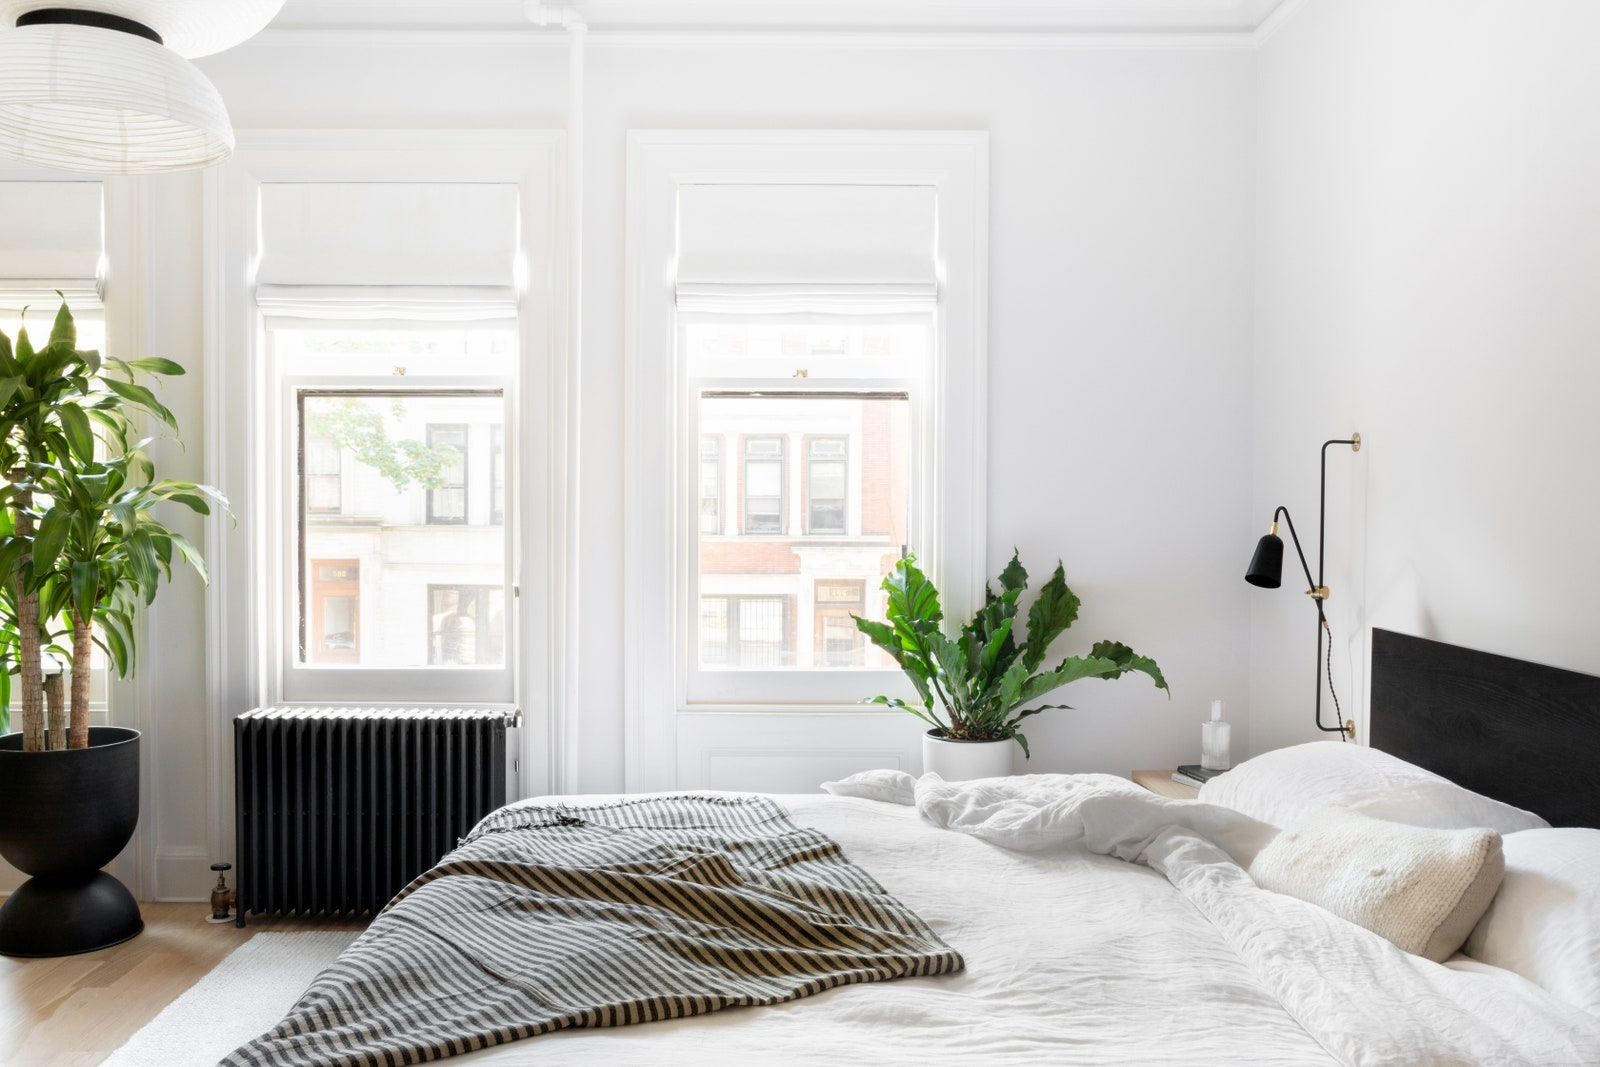 Tips on Making Your Bedroom Cozy